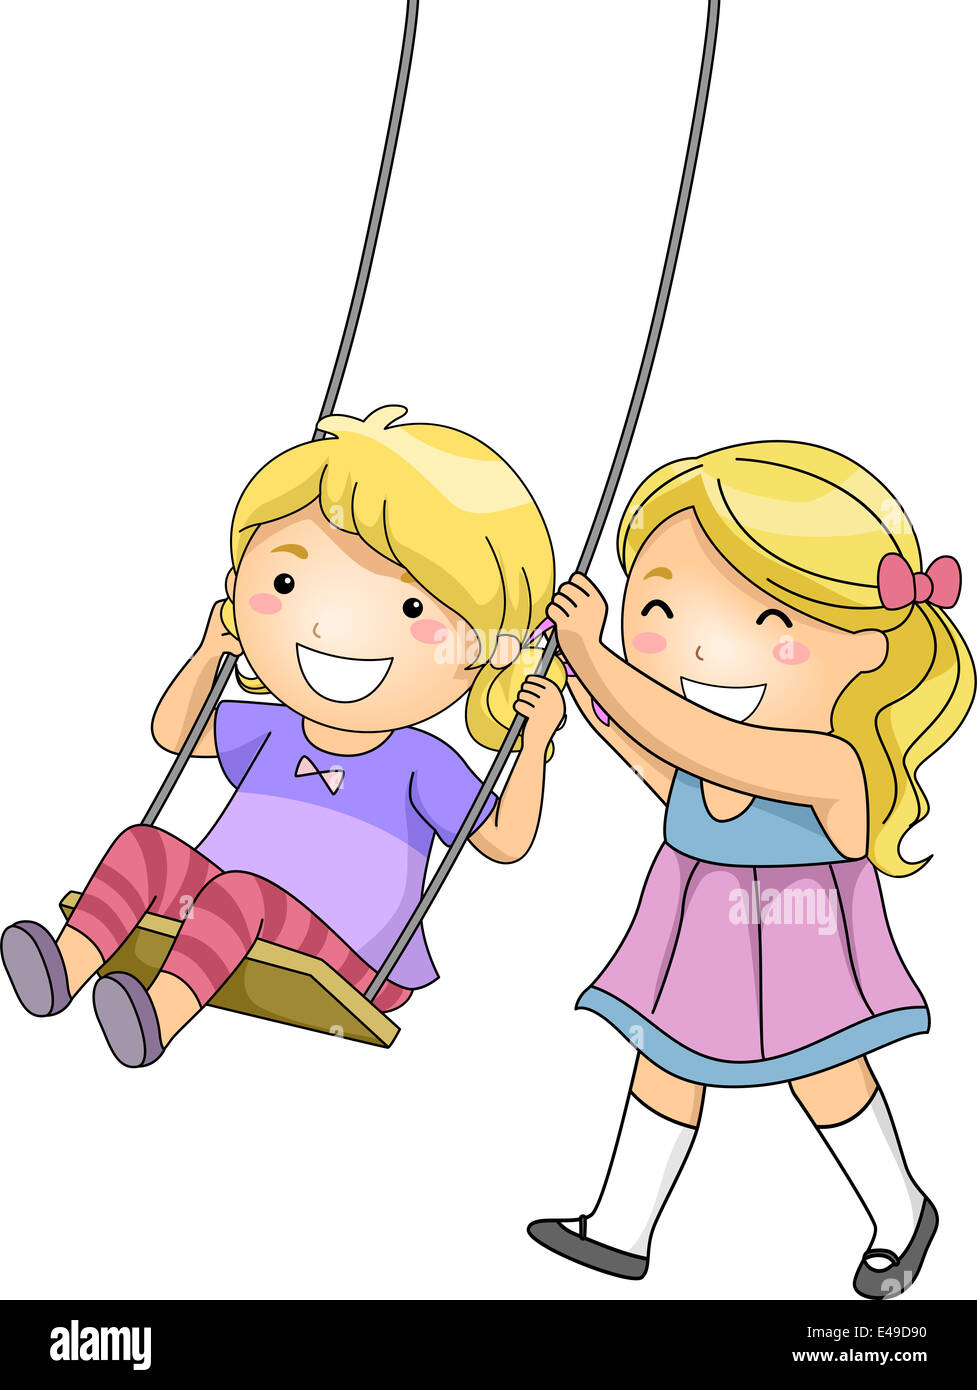 Illustration Of A Little Girl Pushing Her Sister On A Swing Stock